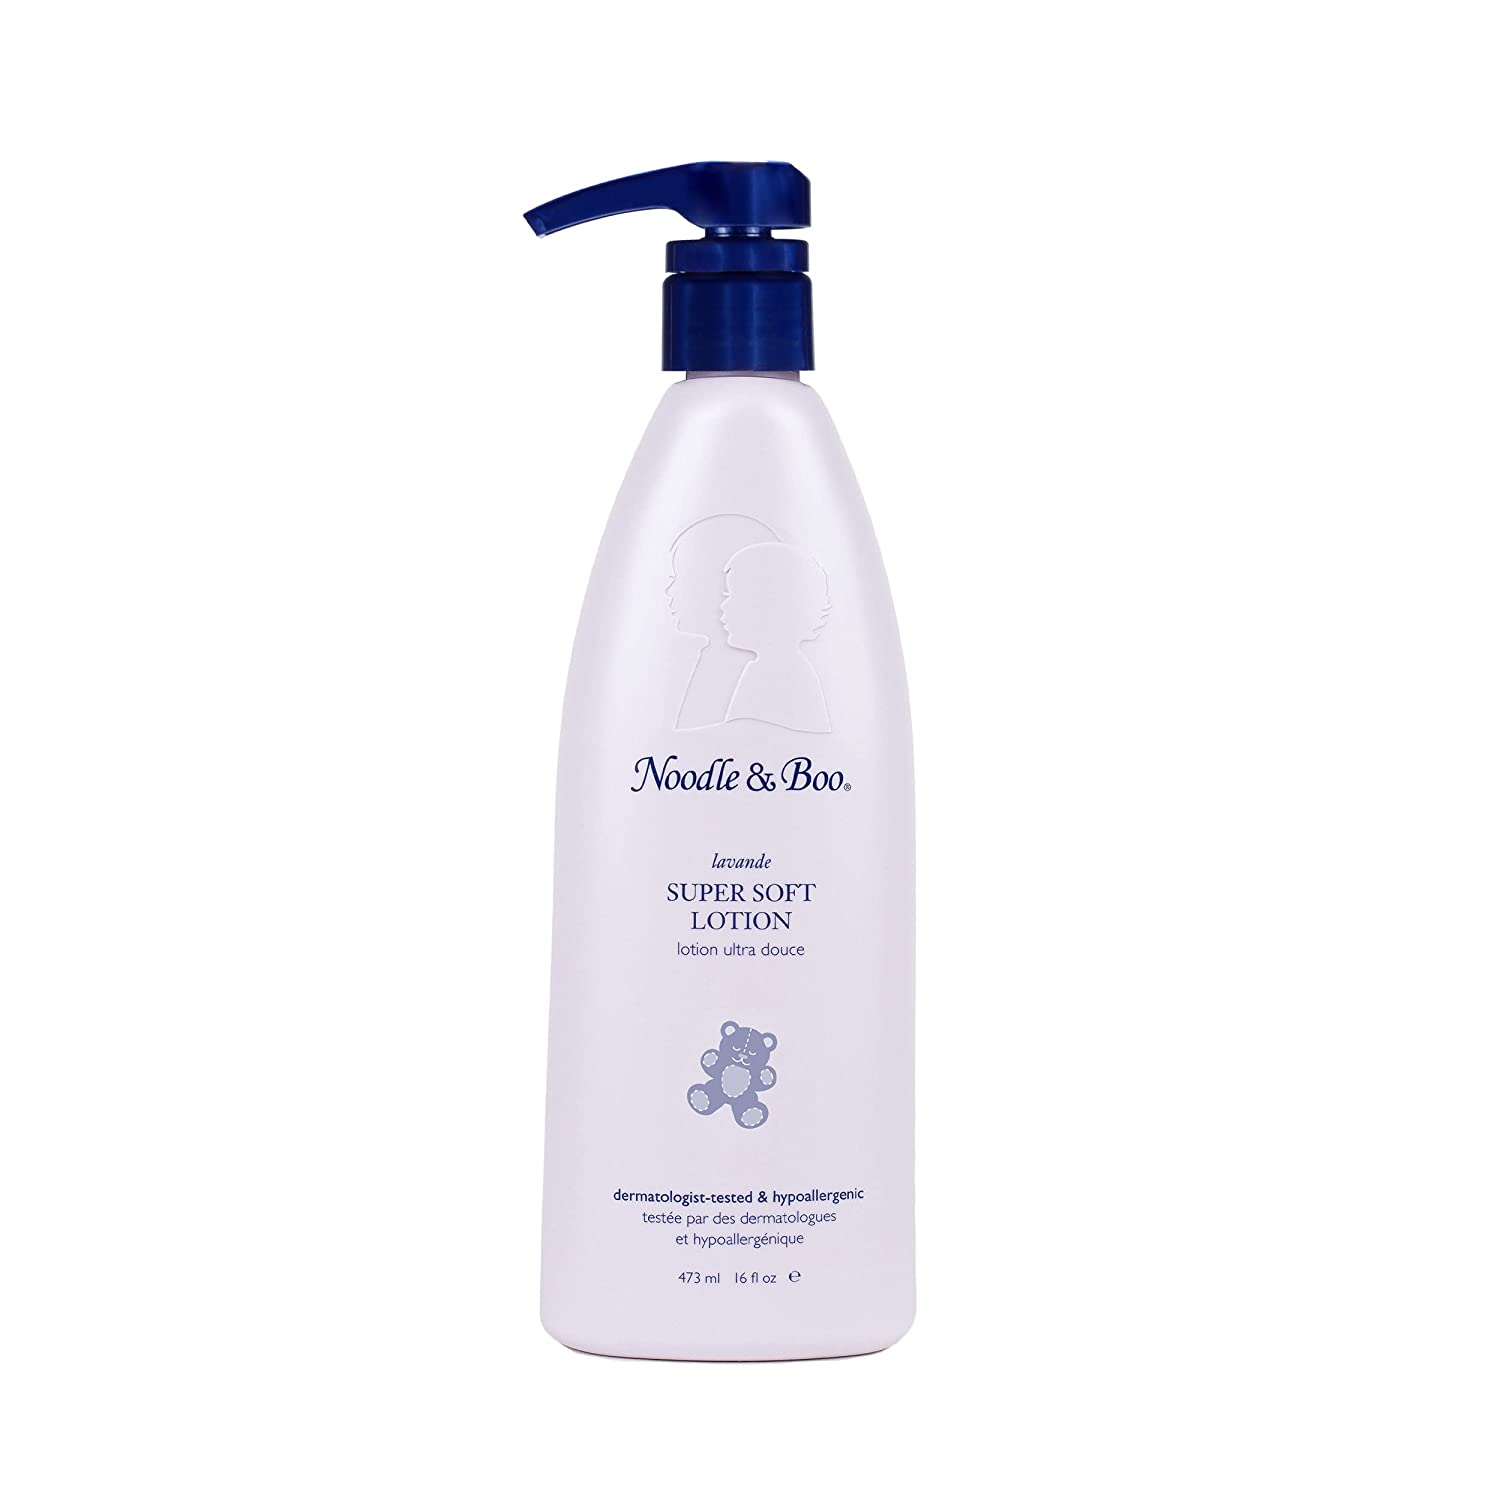 Noodle & Boo Lavender Super Soft Moisturizing Lotion for Daily Newborn and Baby Care